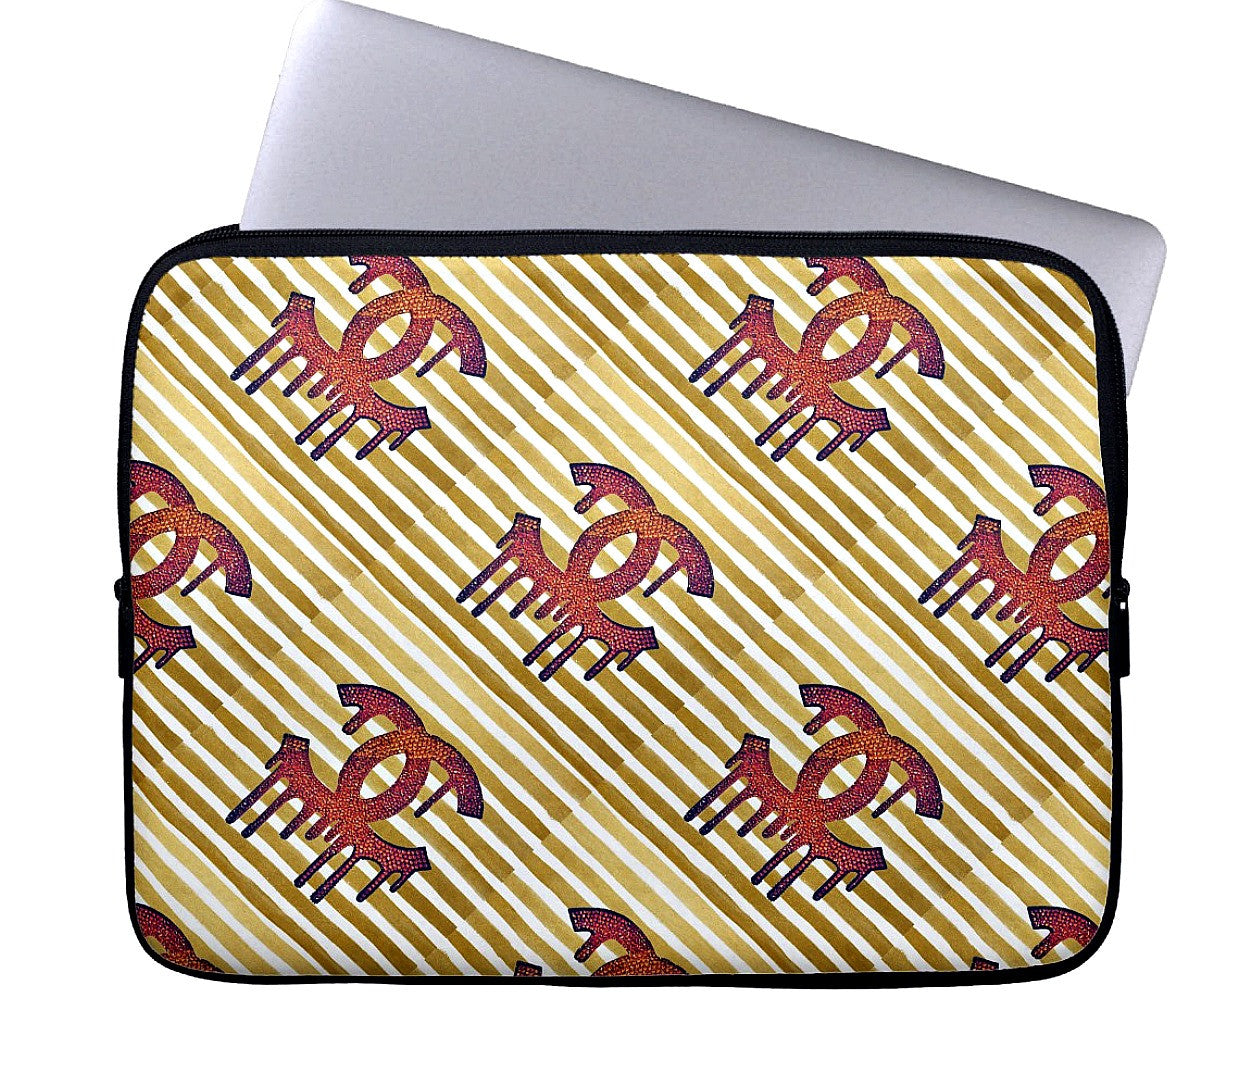 Laptop Sleeve - Multi Dripping C's - CRYSTAHHLED